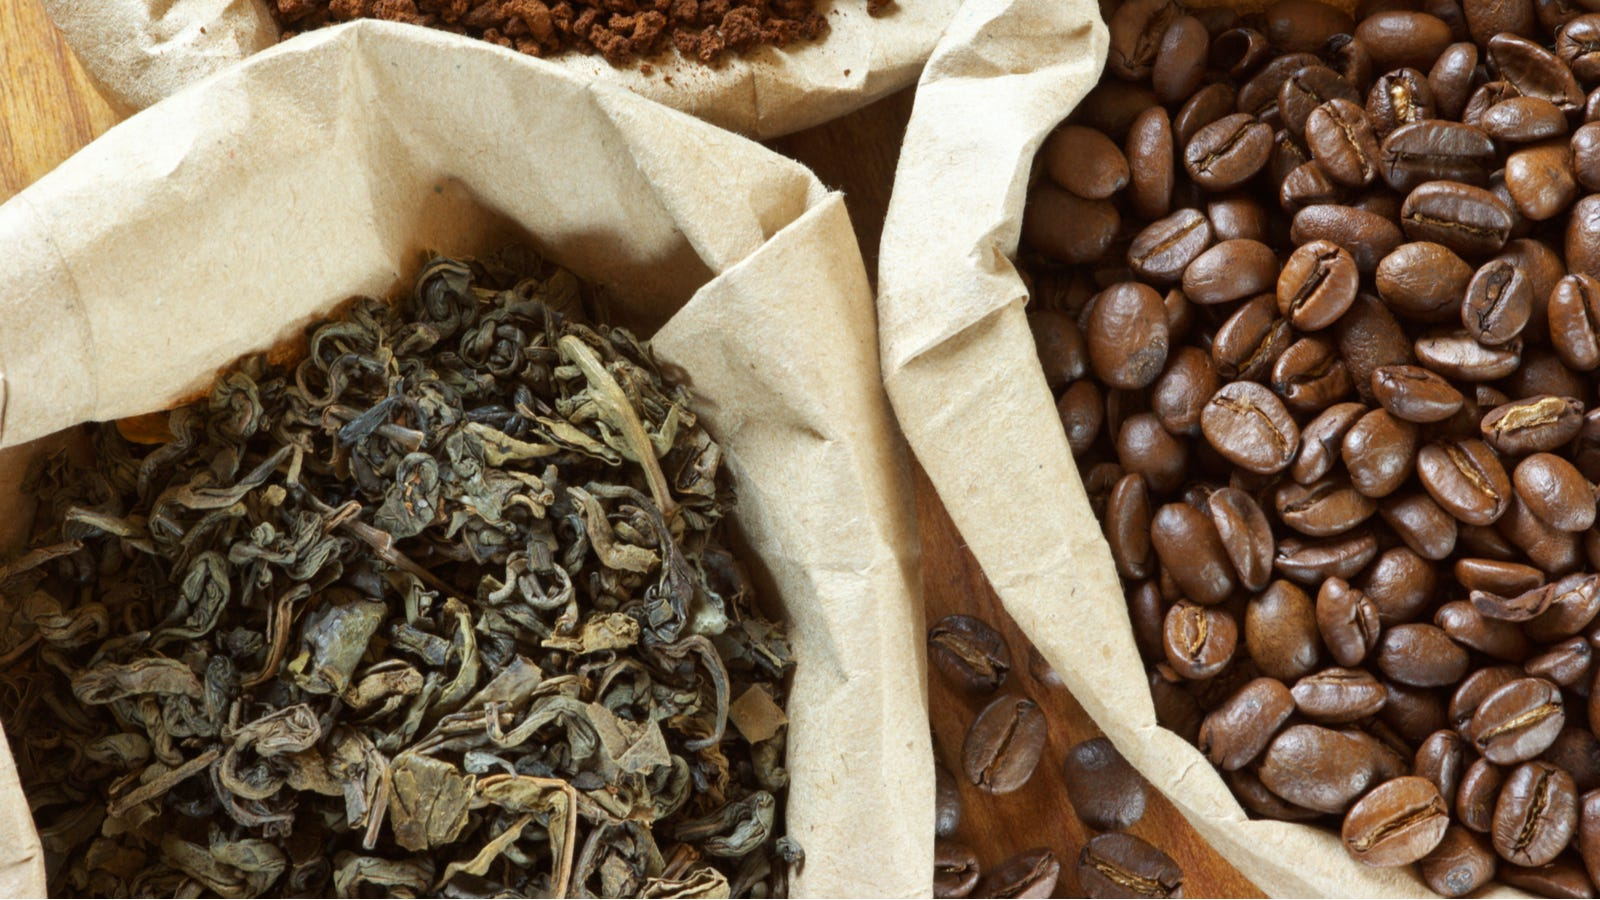 Two paper bags; one filled with tea leaves and the other filled with coffee beans.